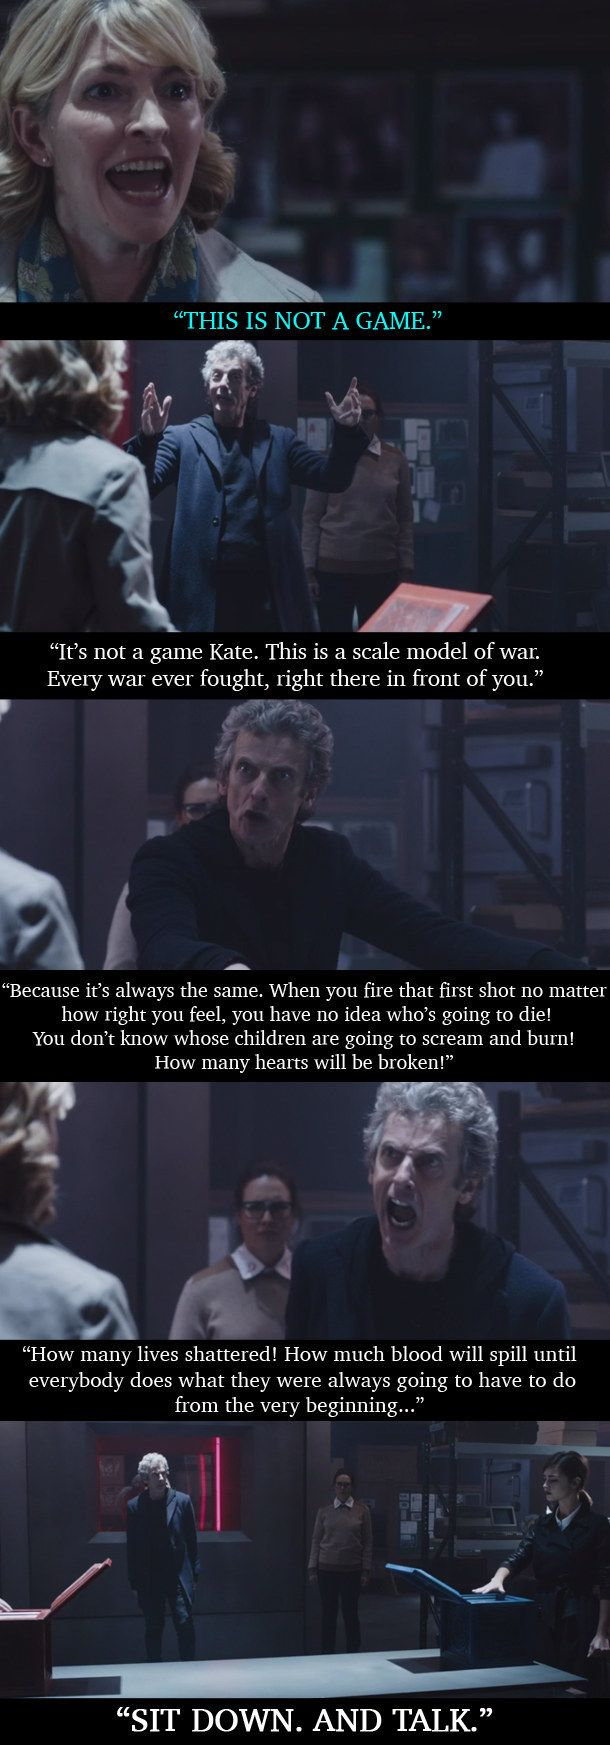 """He had engineered a war game so that both humans and the aliens believed that they had a 50% chance of winning or losing, entirely at random. This led to the accusation of playing games.. 